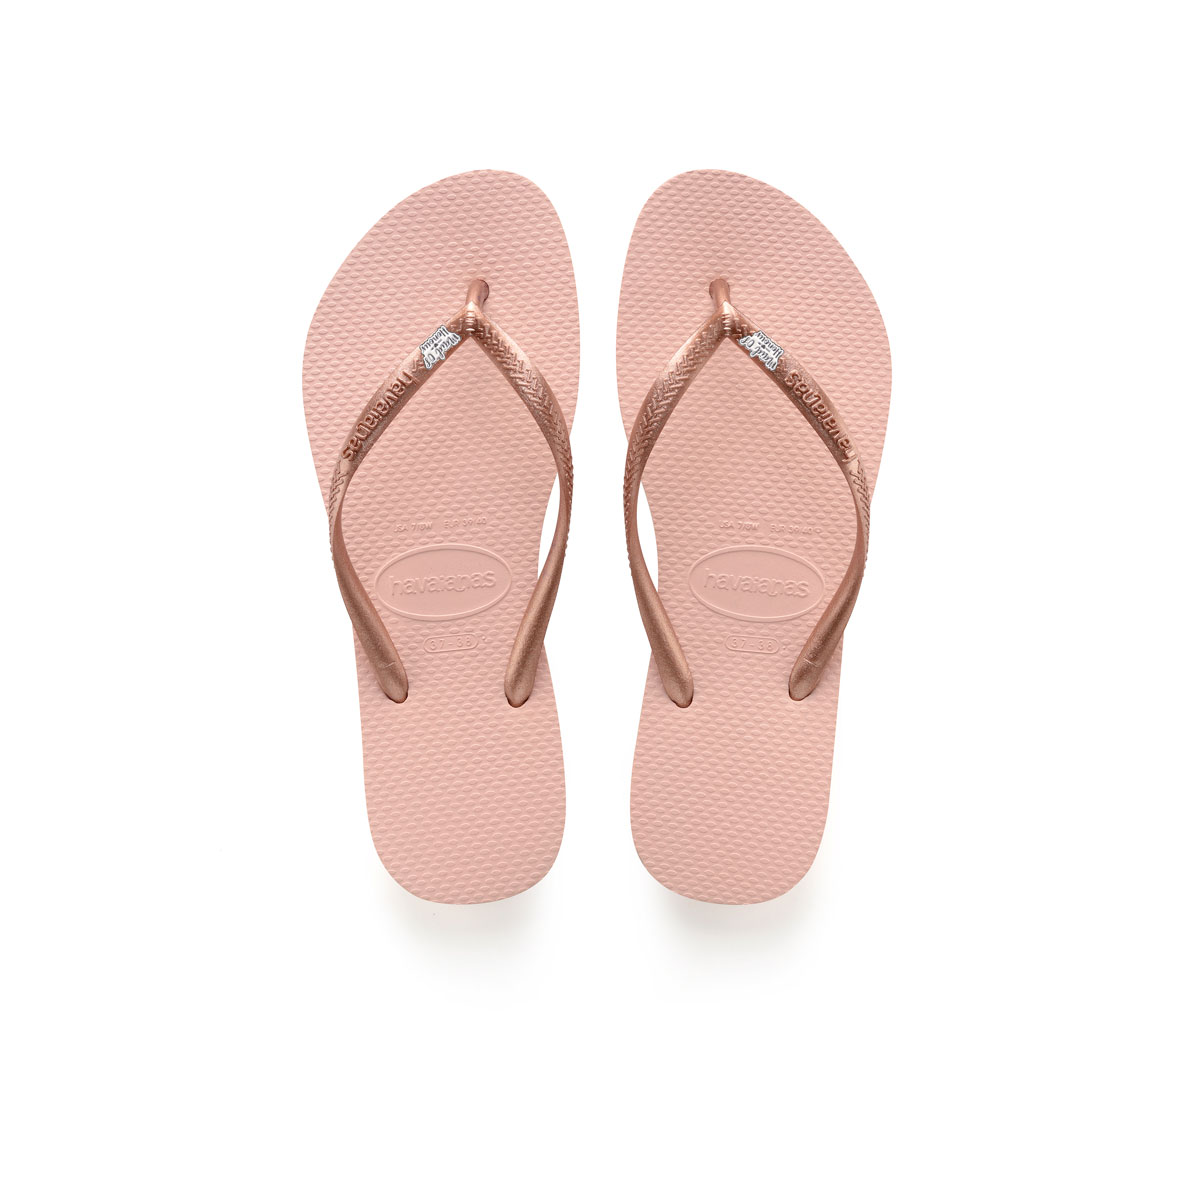 Havaianas Ballet Rose Flip Flops with Silver & White Maid of Honour Pin